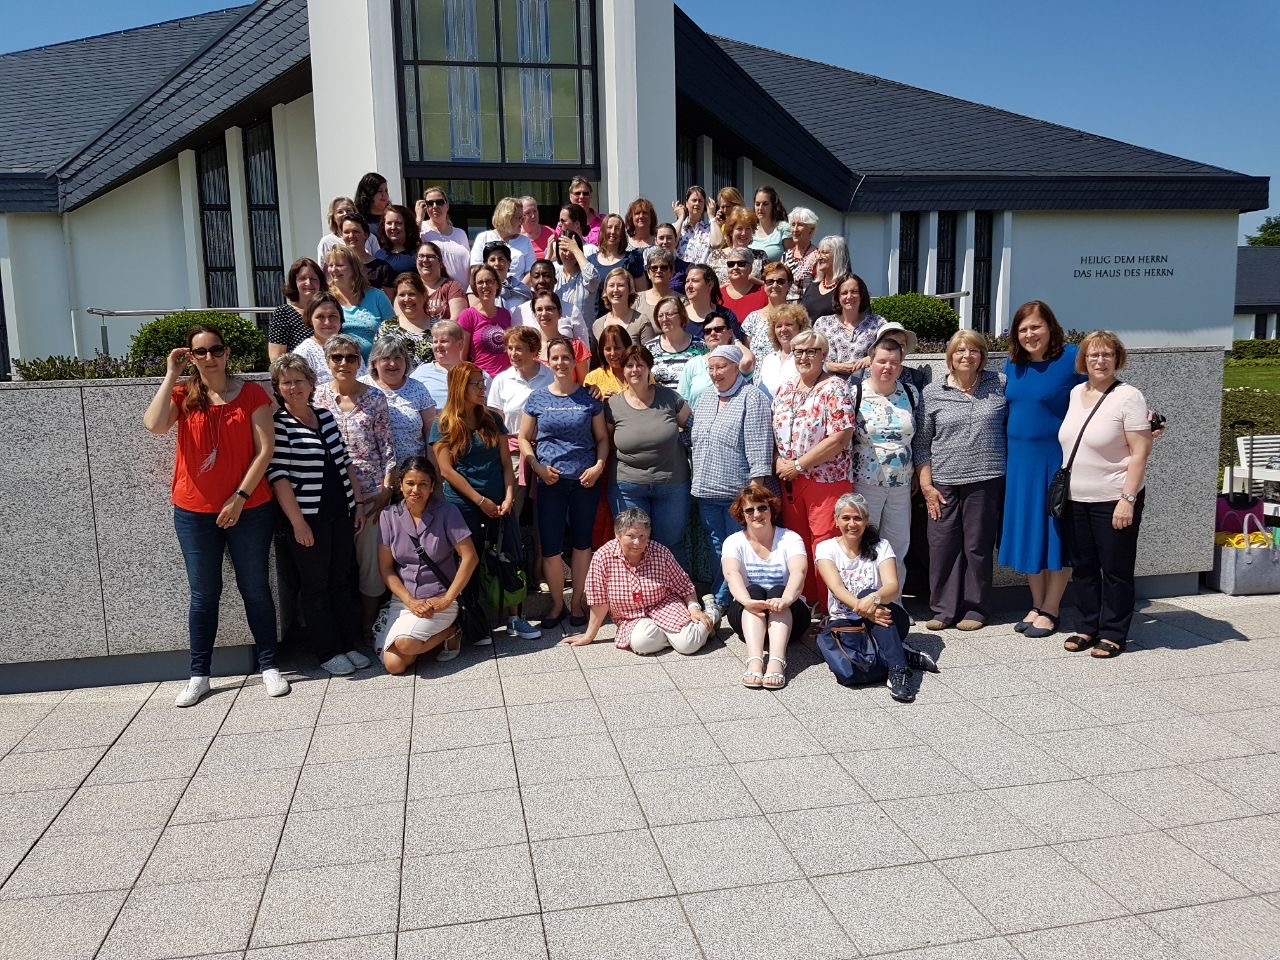 Sisters of the Friedrichsdorf Germany Stake gather outside the Freiberg Germany Temple during their May 2018 temple trip.